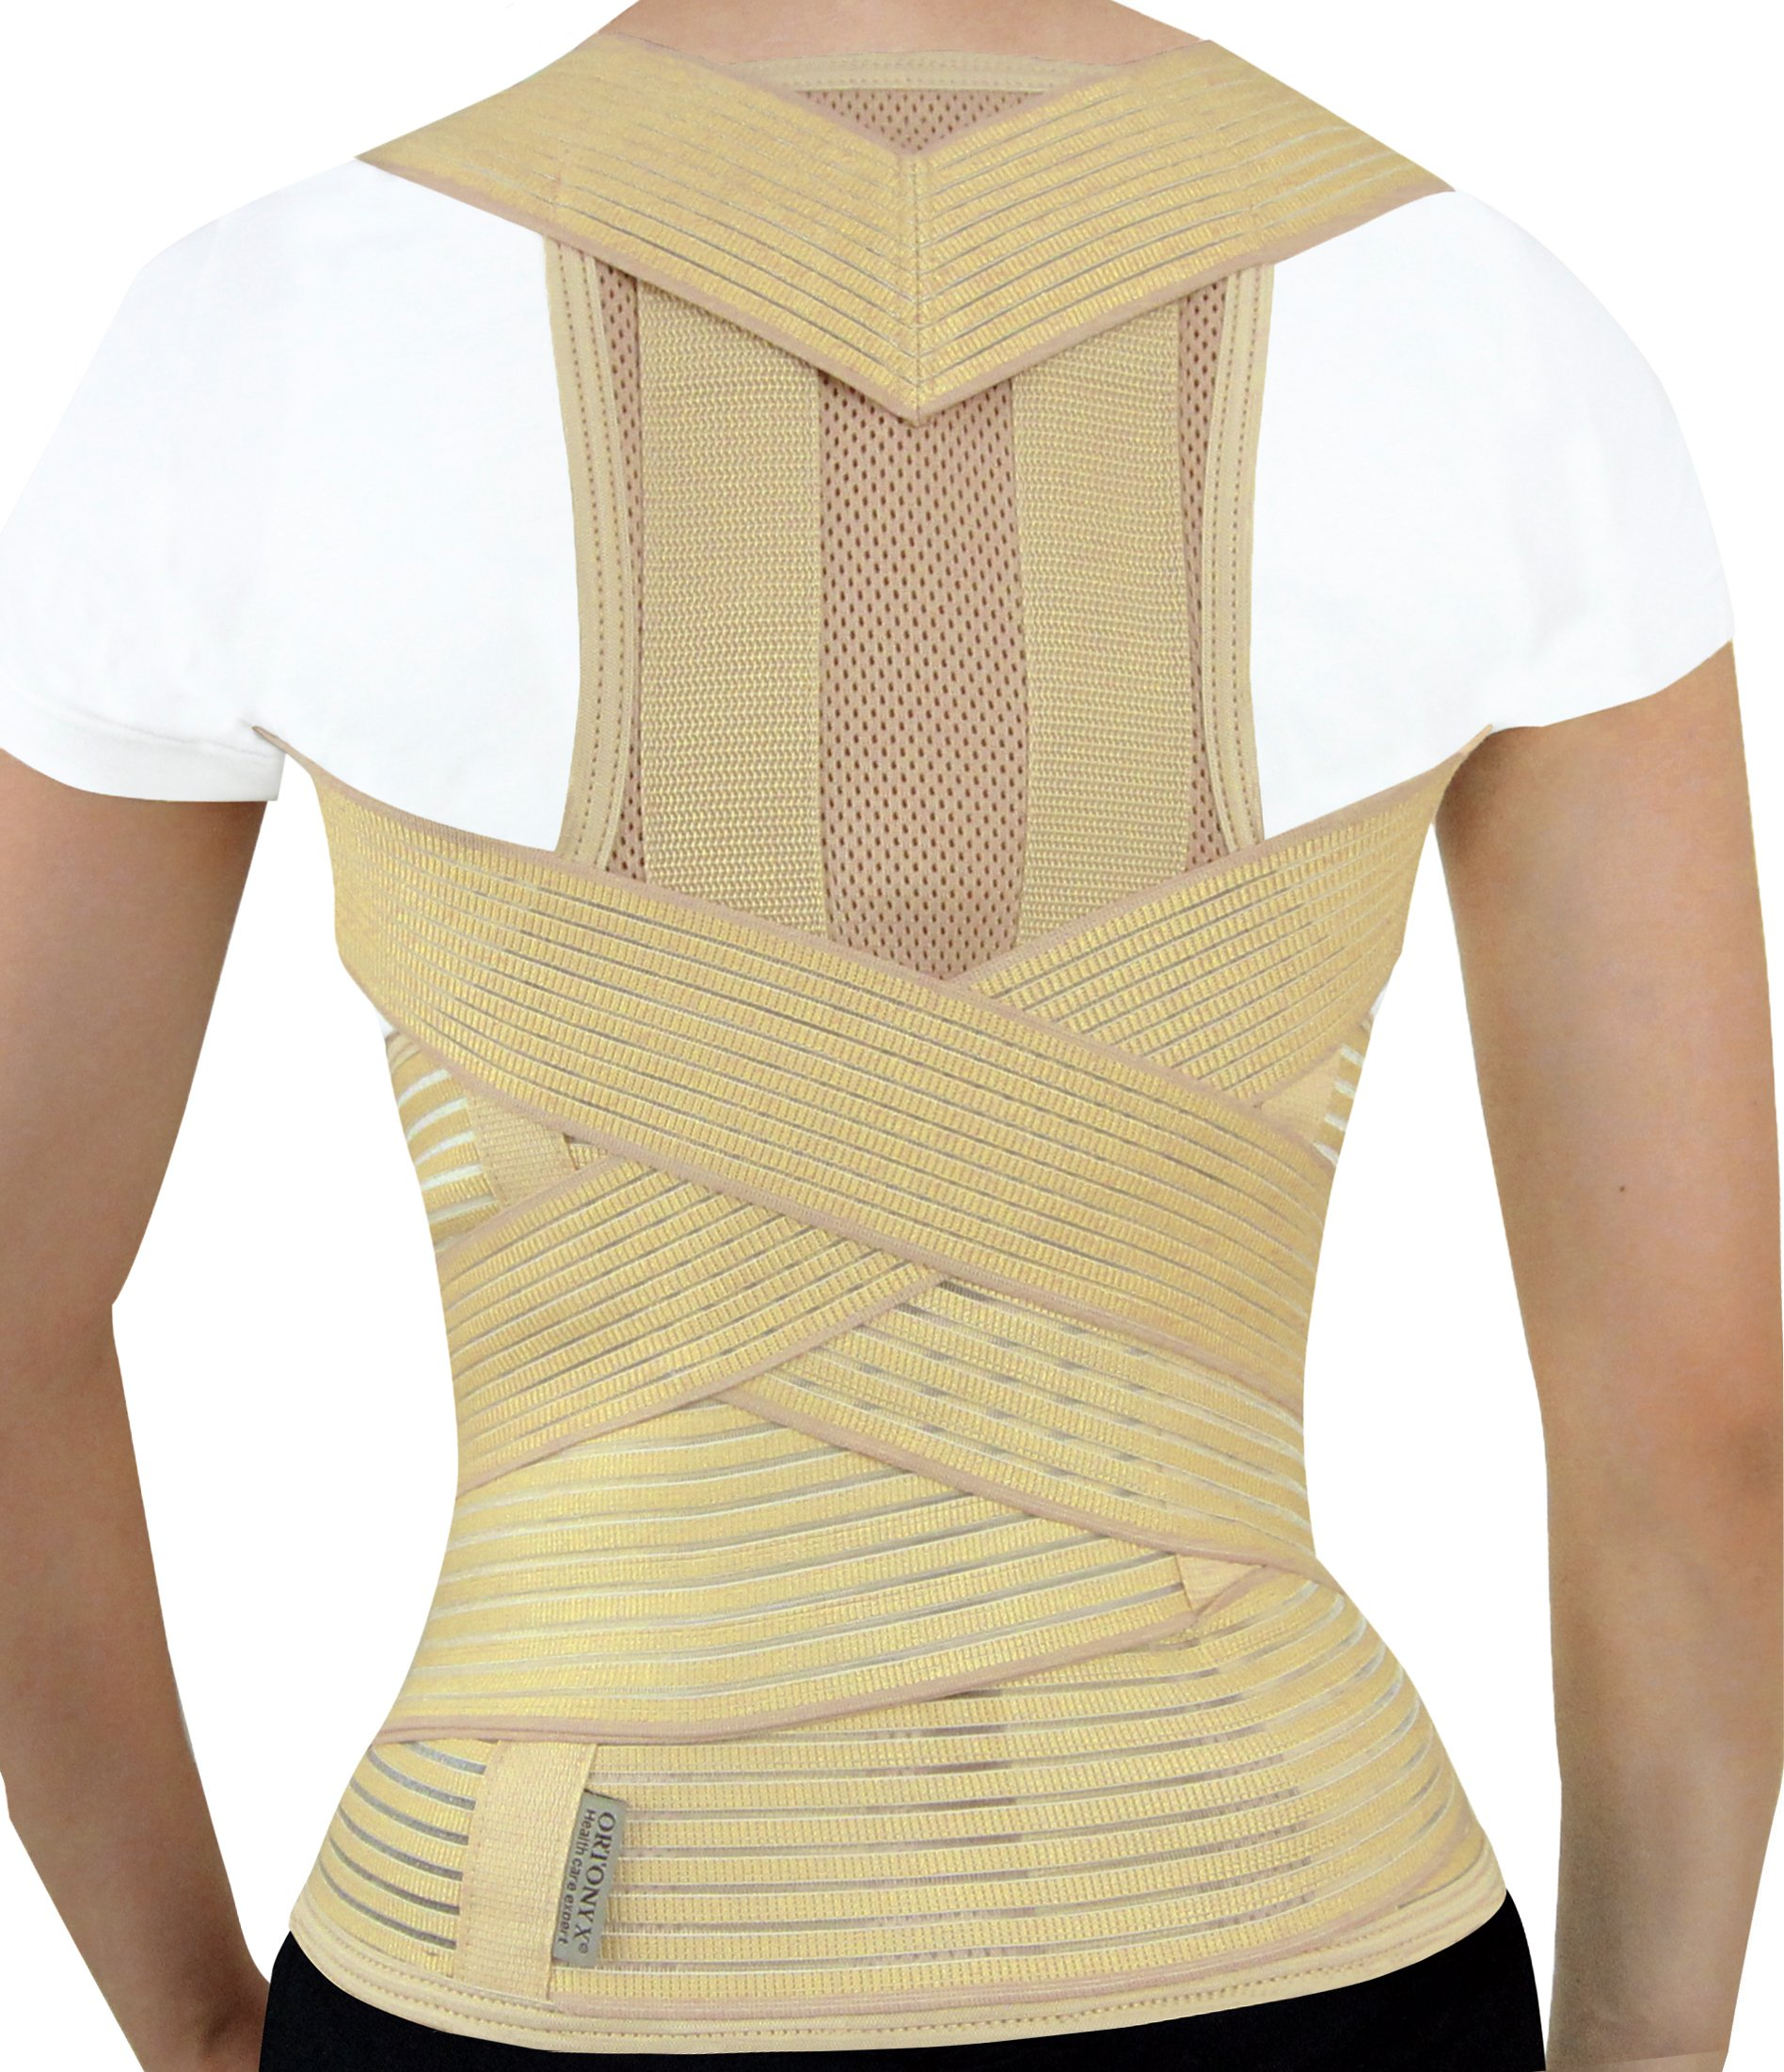 ORTONYX Active Posture Corrector Clavicle and Shoulder Support Back Brace, Fully Adjustable for Men and Women - S Beige